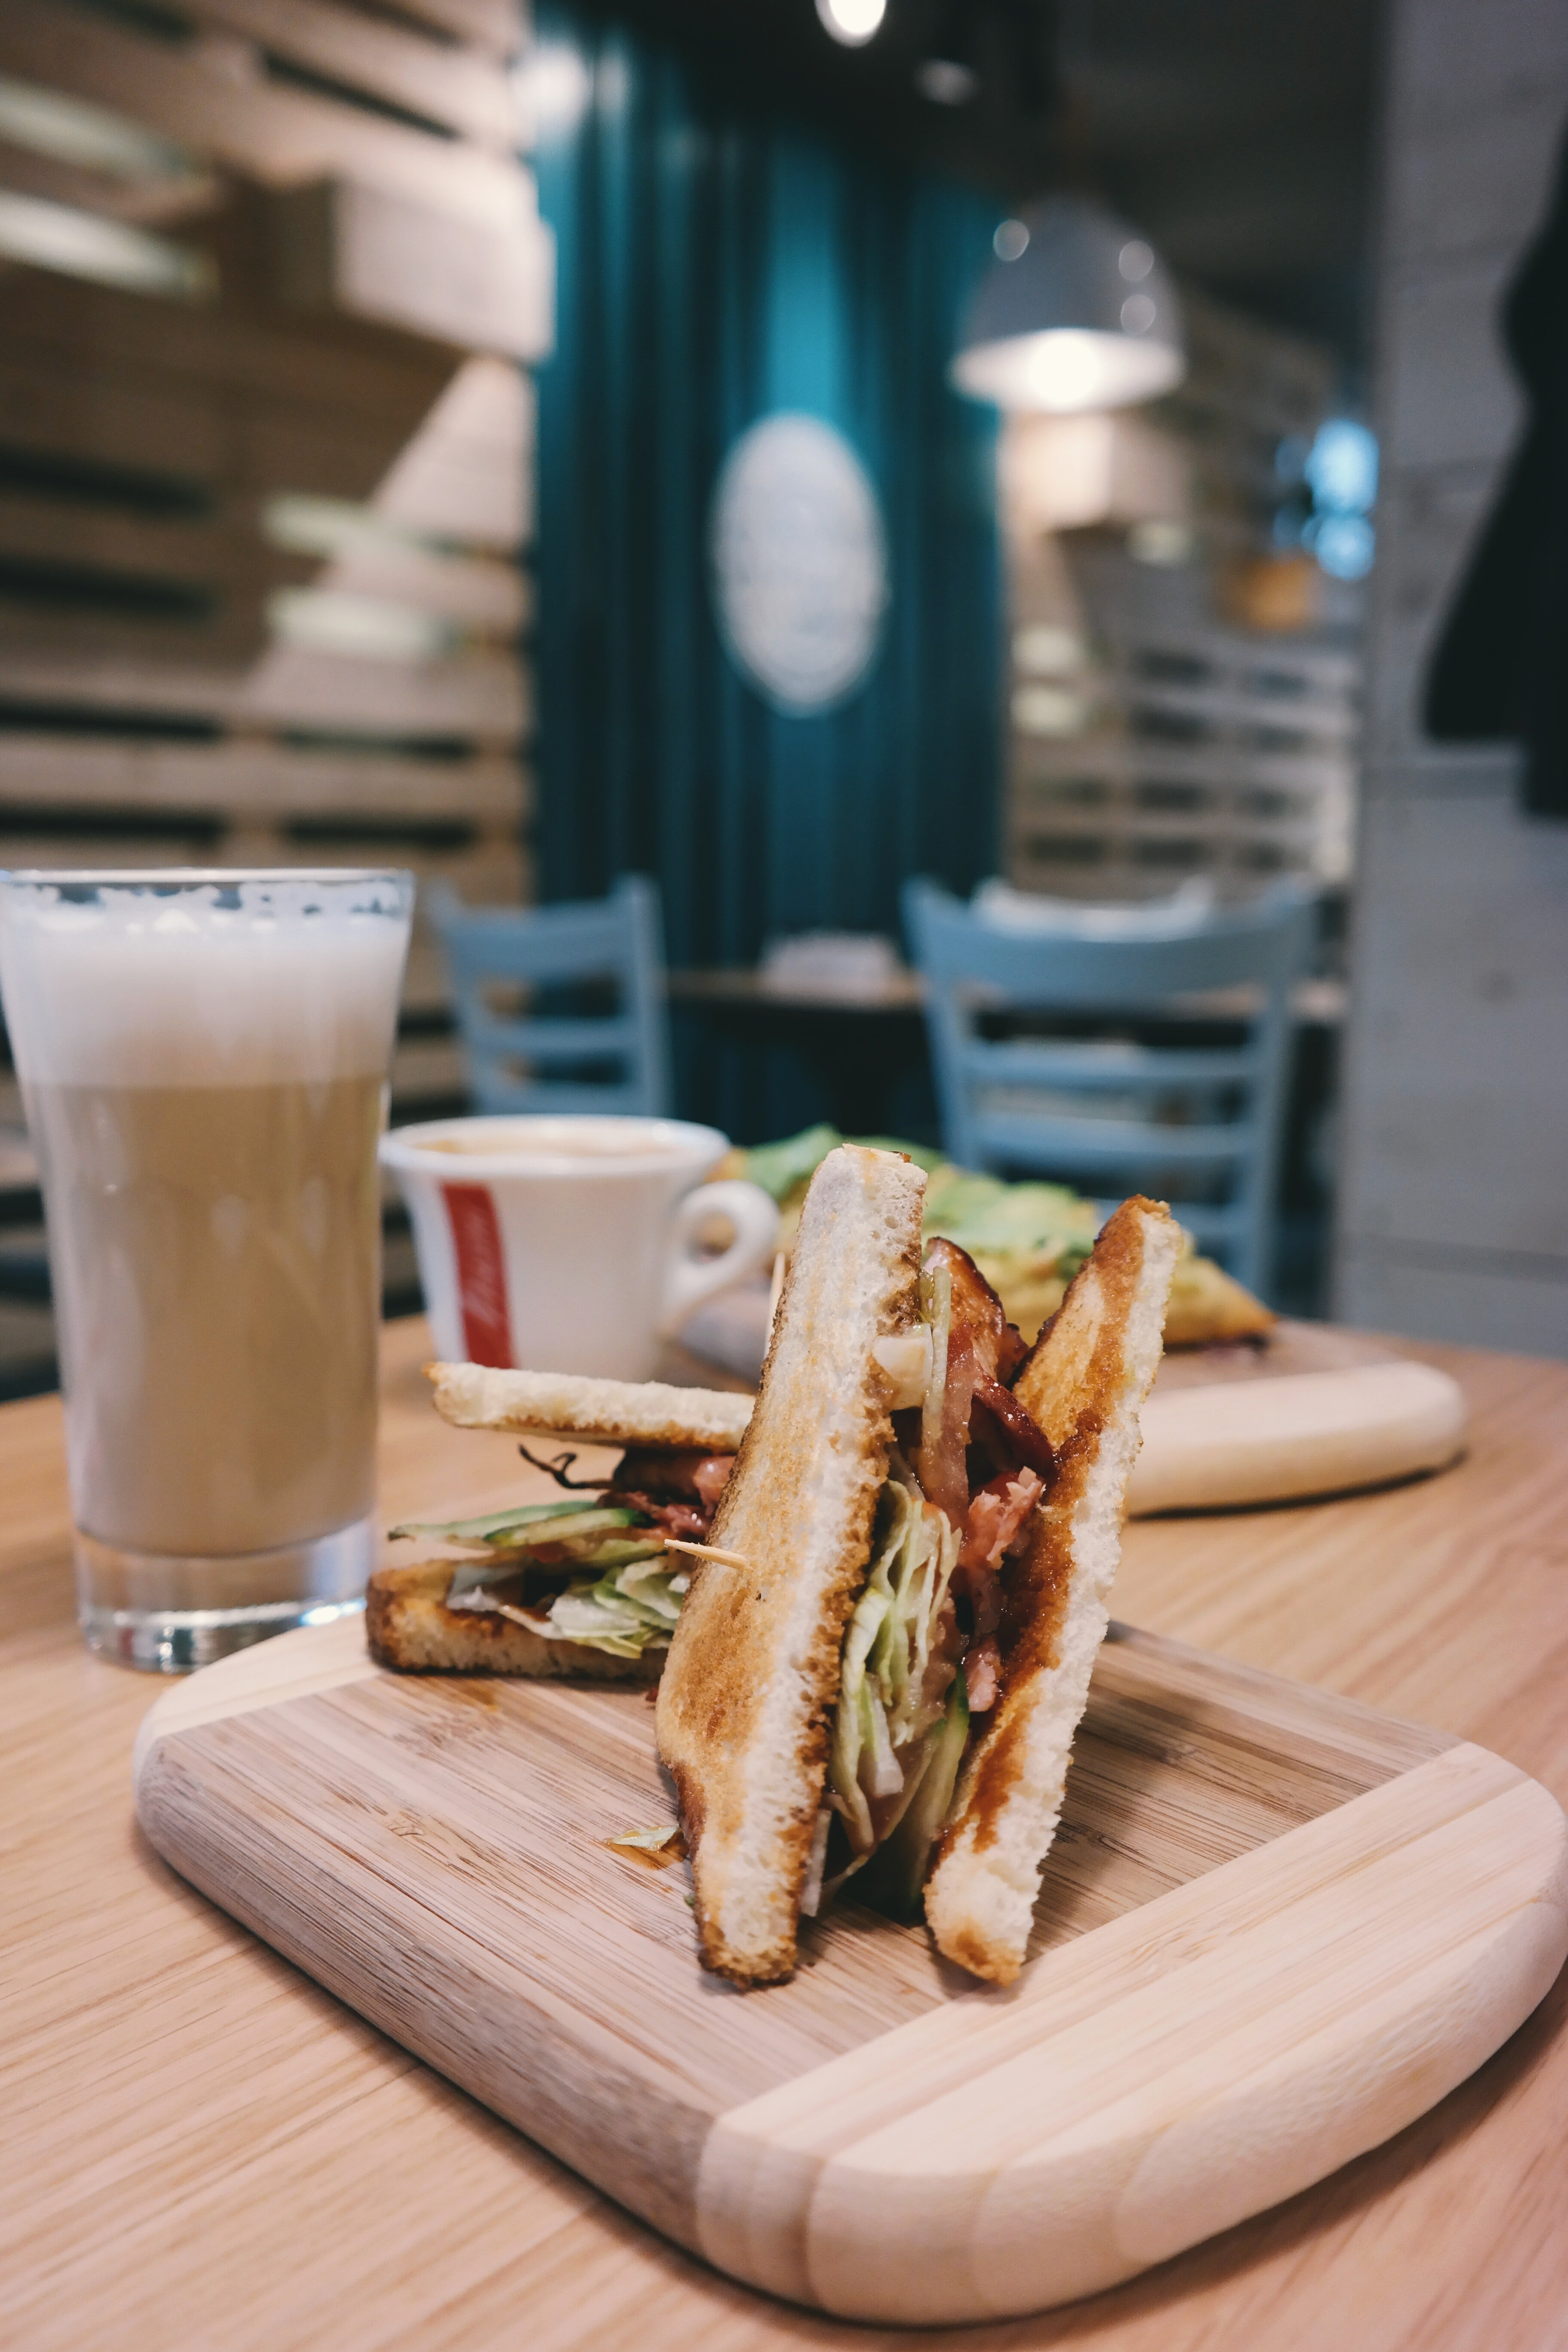 A drink and a couple of sandwiches on a dining table.   Photo: Pexels